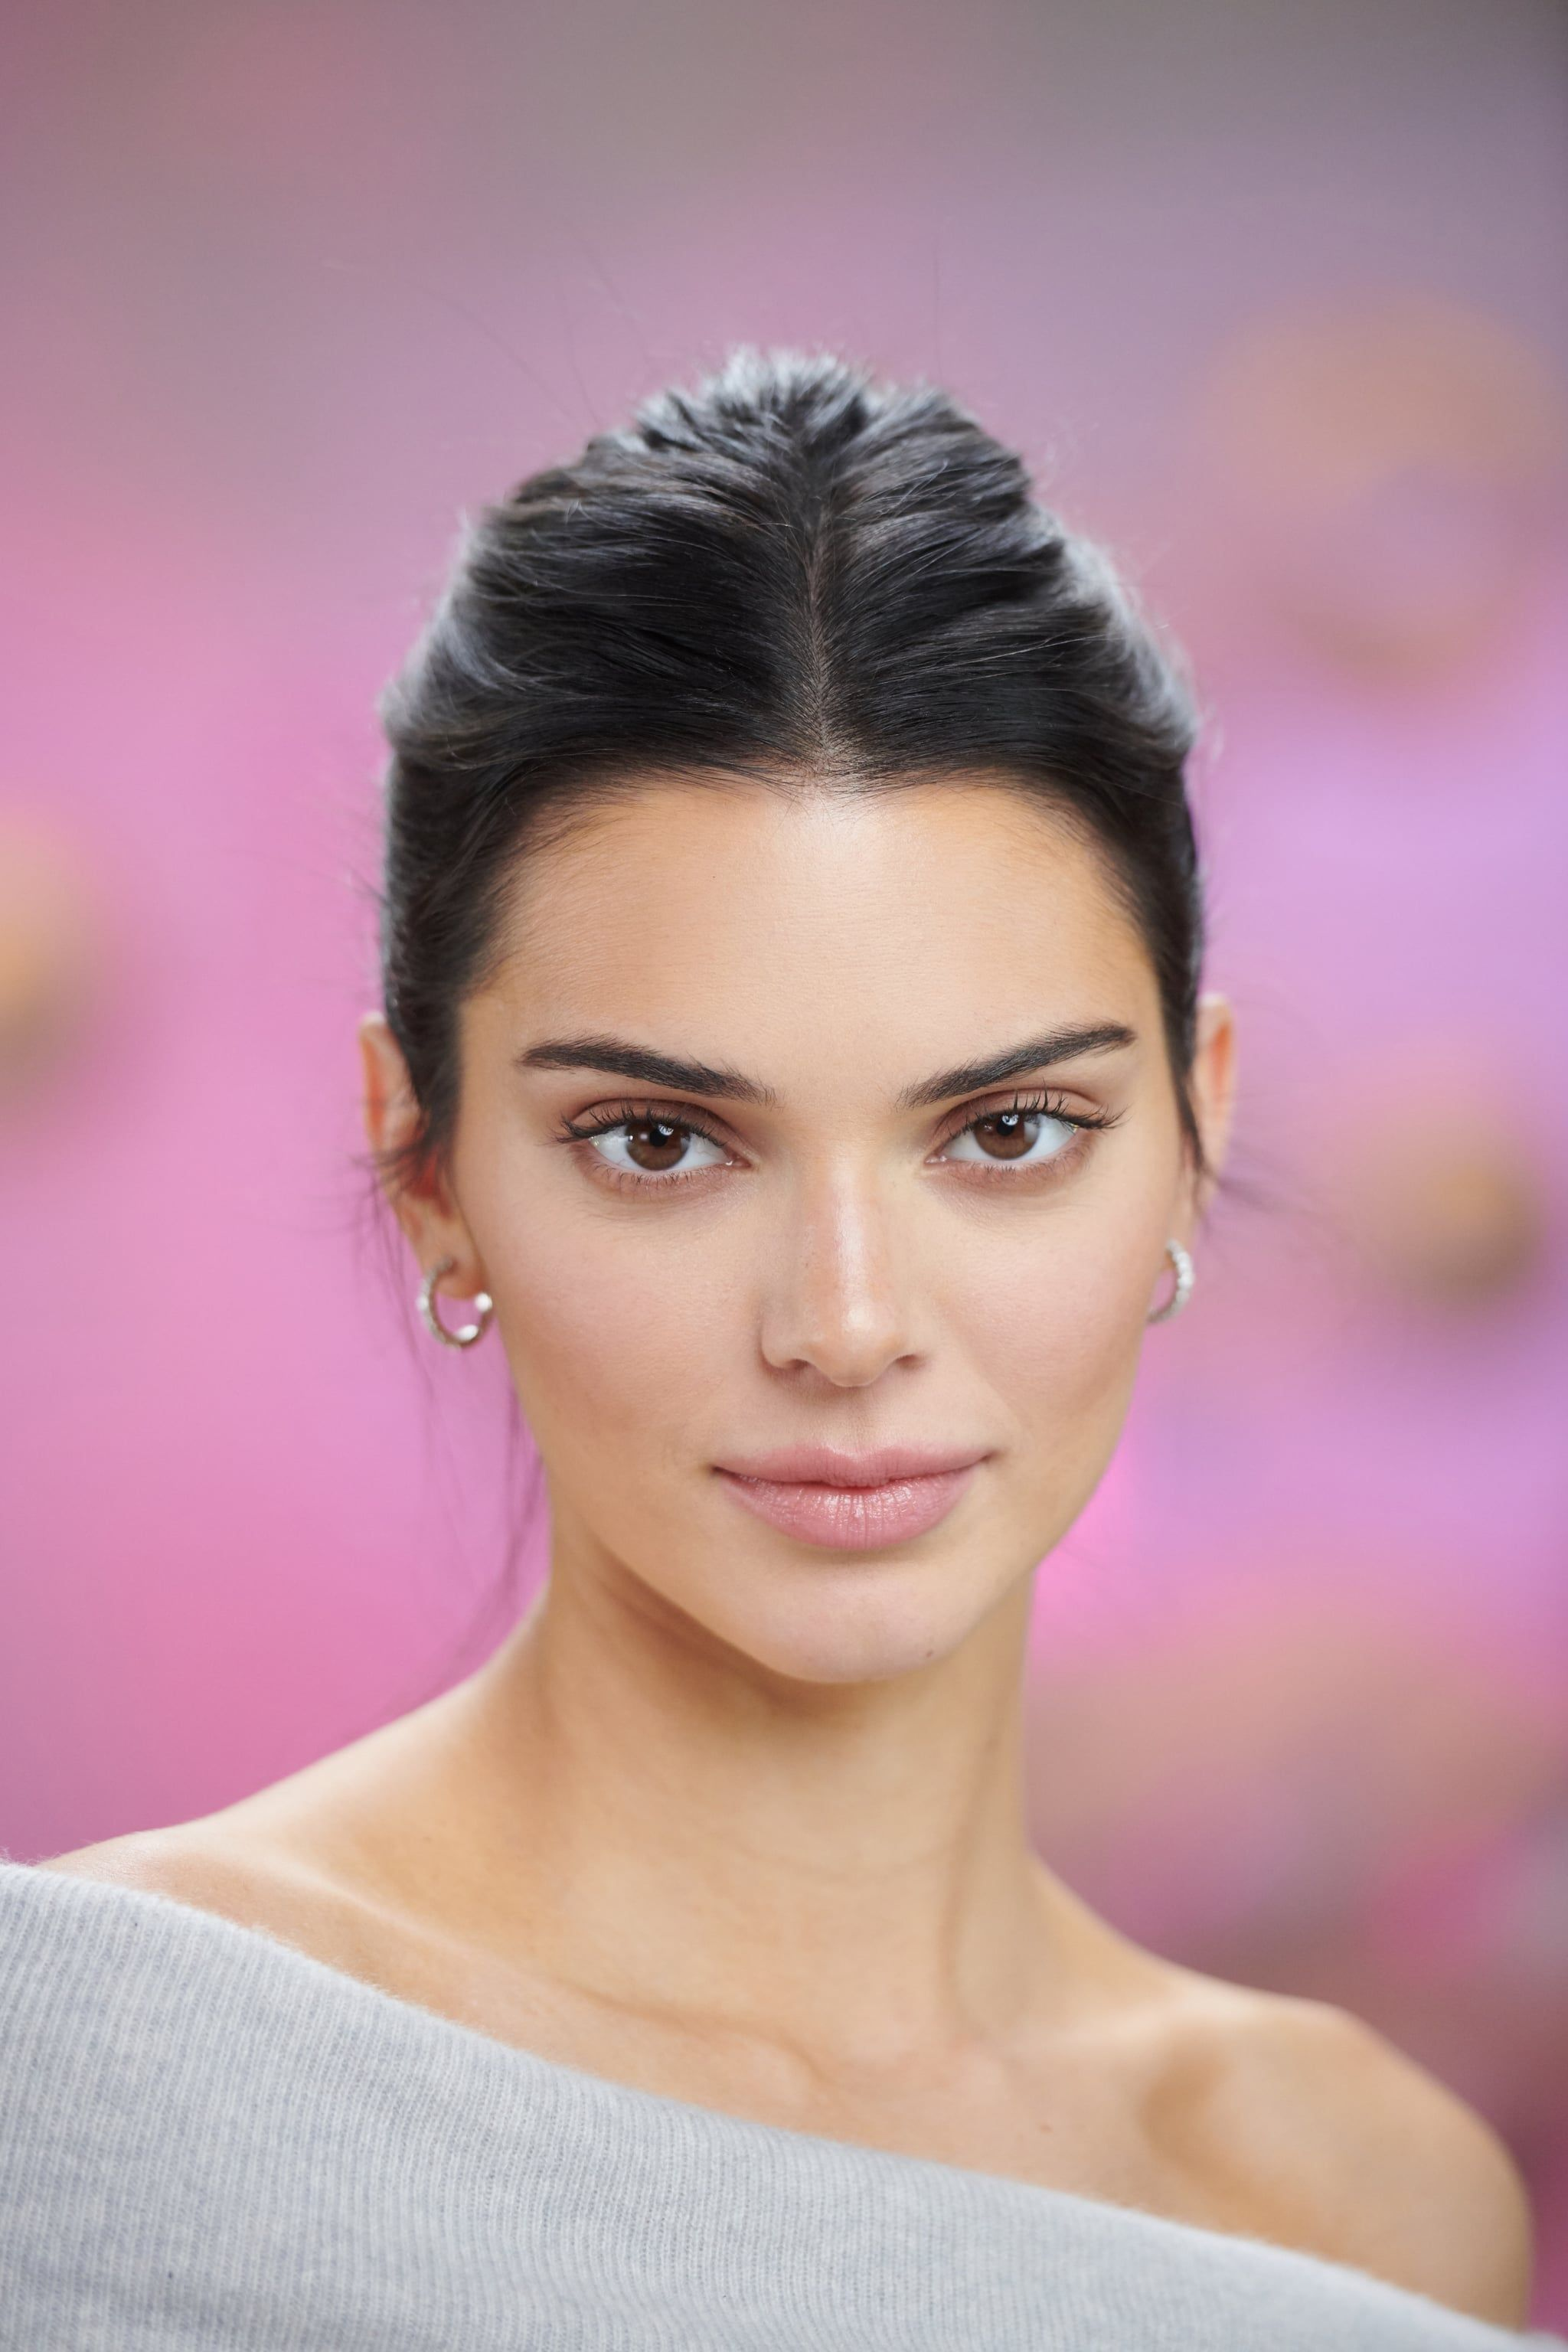 After Criticism About Her Skin, Kendall Jenner Is Talking About Her Acne  For the First Time | Kendall jenner hair, Kendall jenner makeup, Jenner hair